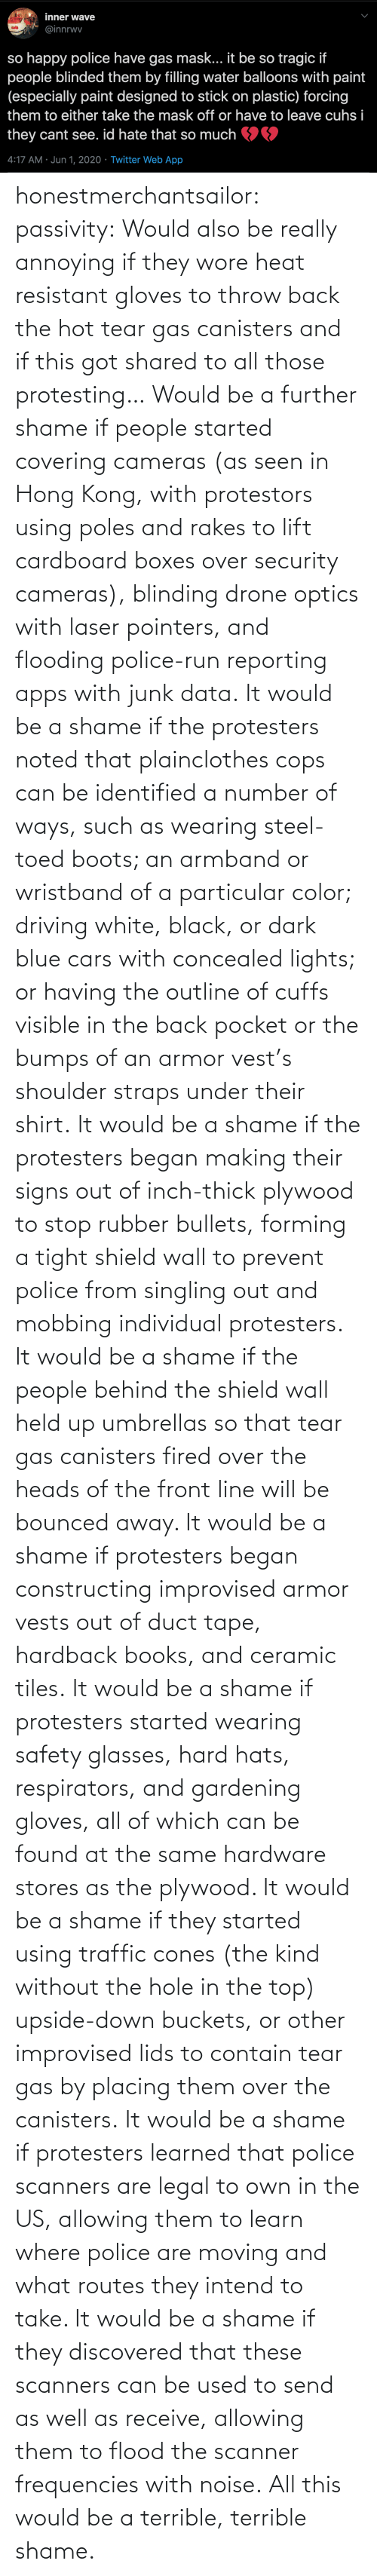 Annoying: honestmerchantsailor:  passivity: Would also be really annoying if they wore heat resistant gloves to throw back the hot tear gas canisters and if this got shared to all those protesting… Would be a further shame if people started covering cameras (as seen in Hong Kong, with protestors using poles and rakes to lift cardboard boxes over security cameras), blinding drone optics with laser pointers, and flooding police-run reporting apps with junk data. It would be a shame if the protesters noted that plainclothes cops can be identified a number of ways, such as wearing steel-toed boots; an armband or wristband of a particular color; driving white, black, or dark blue cars with concealed lights; or having the outline of cuffs visible in the back pocket or the bumps of an armor vest's shoulder straps under their shirt. It would be a shame if the protesters began making their signs out of inch-thick plywood to stop rubber bullets, forming a tight shield wall to prevent police from singling out and mobbing individual protesters. It would be a shame if the people behind the shield wall held up umbrellas so that tear gas canisters fired over the heads of the front line will be bounced away. It would be a shame if protesters began constructing improvised armor vests out of duct tape, hardback books, and ceramic tiles. It would be a shame if protesters started wearing safety glasses, hard hats, respirators, and gardening gloves, all of which can be found at the same hardware stores as the plywood. It would be a shame if they started using traffic cones (the kind without the hole in the top) upside-down buckets, or other improvised lids to contain tear gas by placing them over the canisters. It would be a shame if protesters learned that police scanners are legal to own in the US, allowing them to learn where police are moving and what routes they intend to take. It would be a shame if they discovered that these scanners can be used to send as well as receive, allowing them to flood the scanner frequencies with noise. All this would be a terrible, terrible shame.